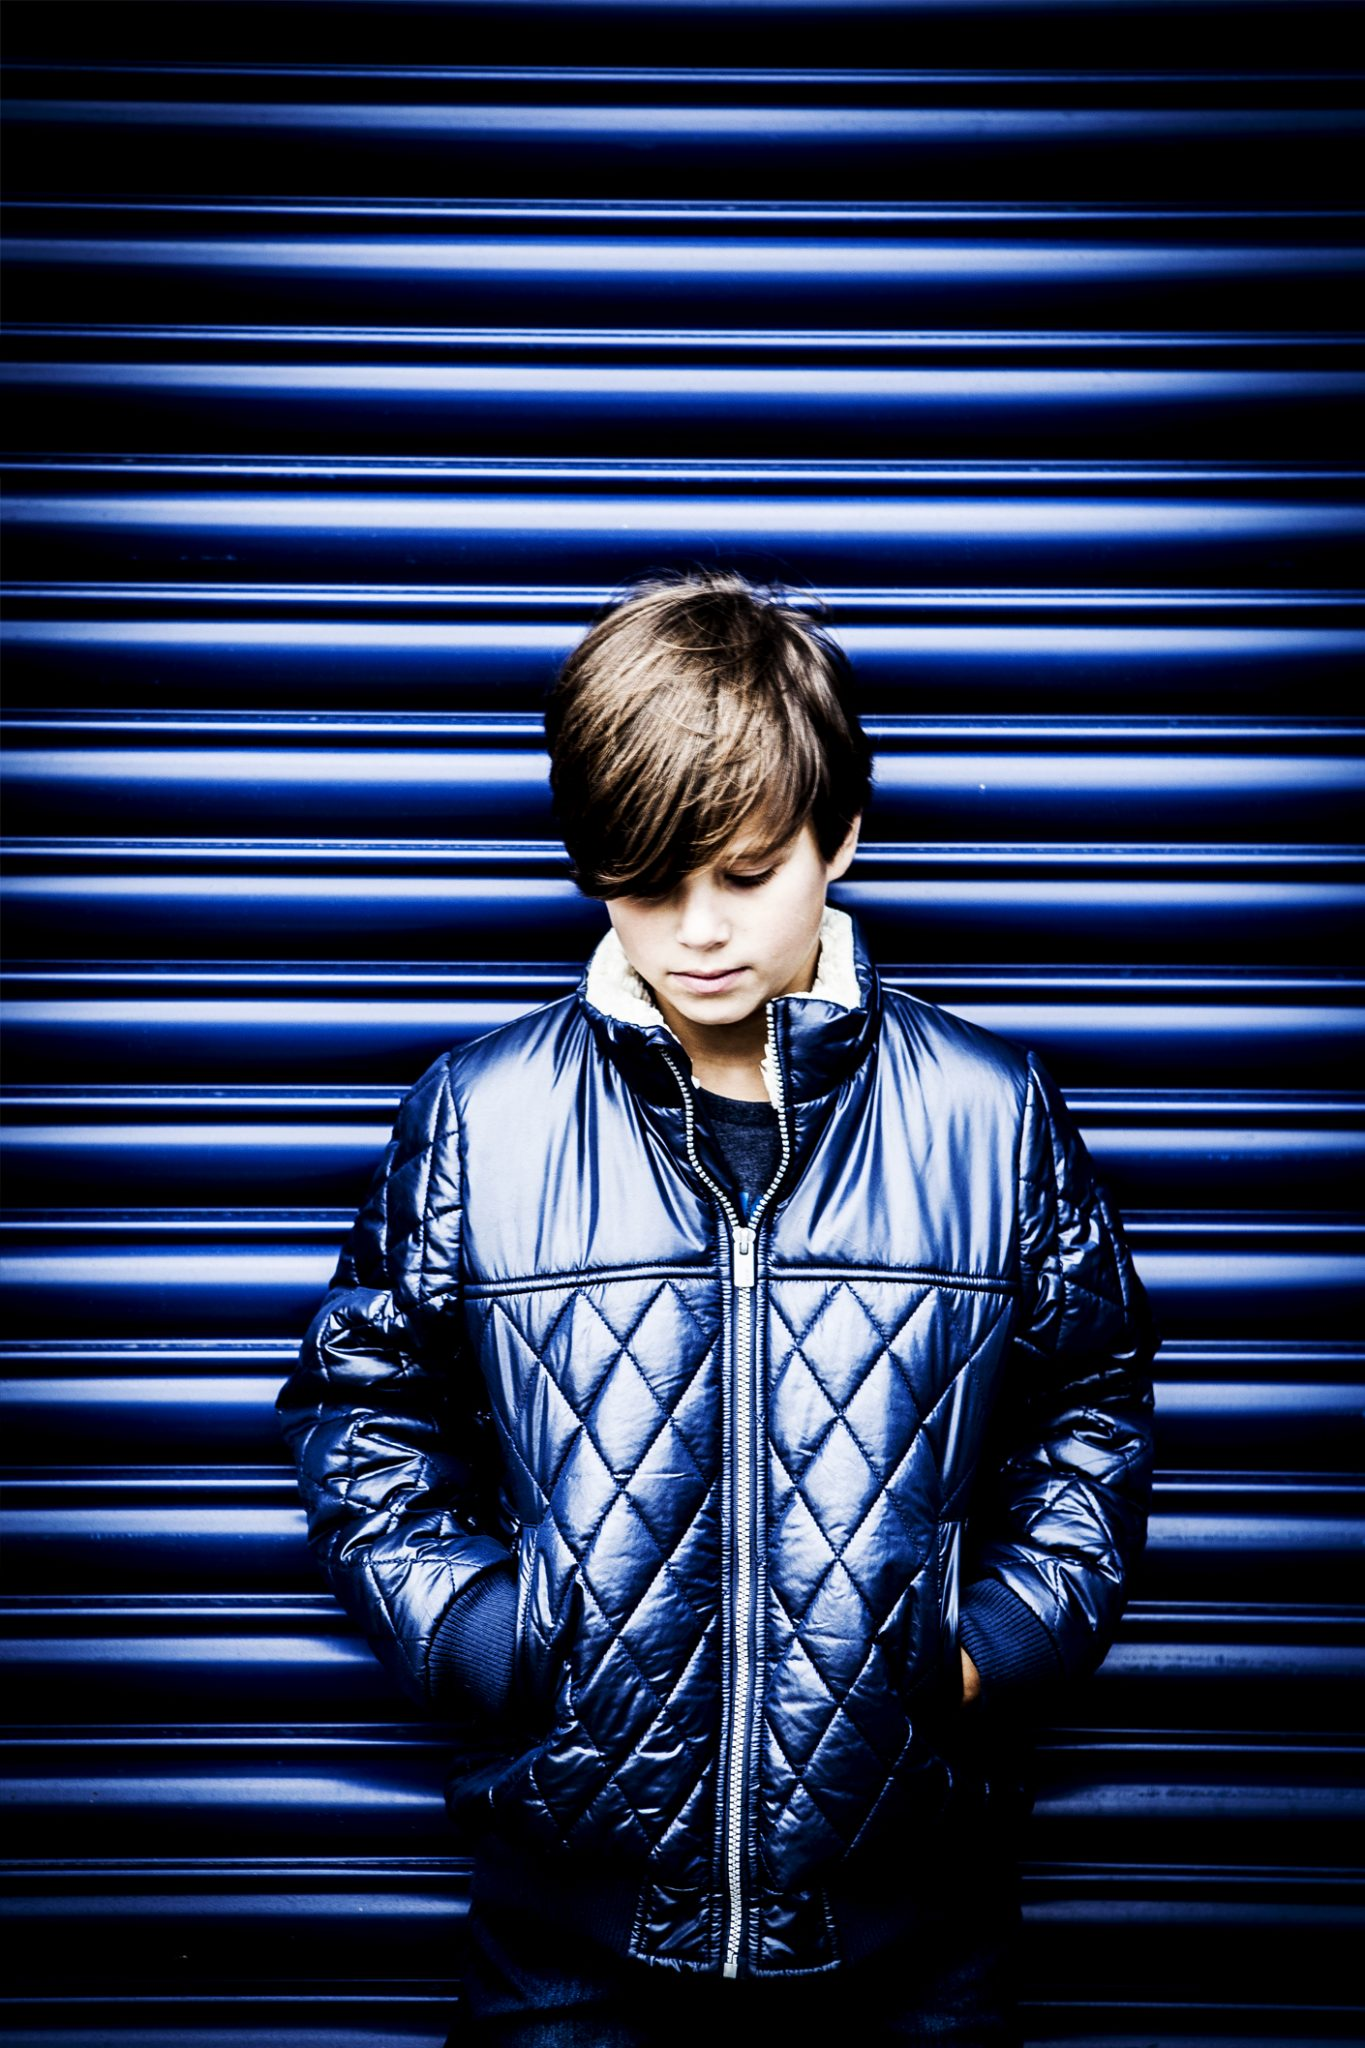 kids-fashion-photographer-based-in-manchester-